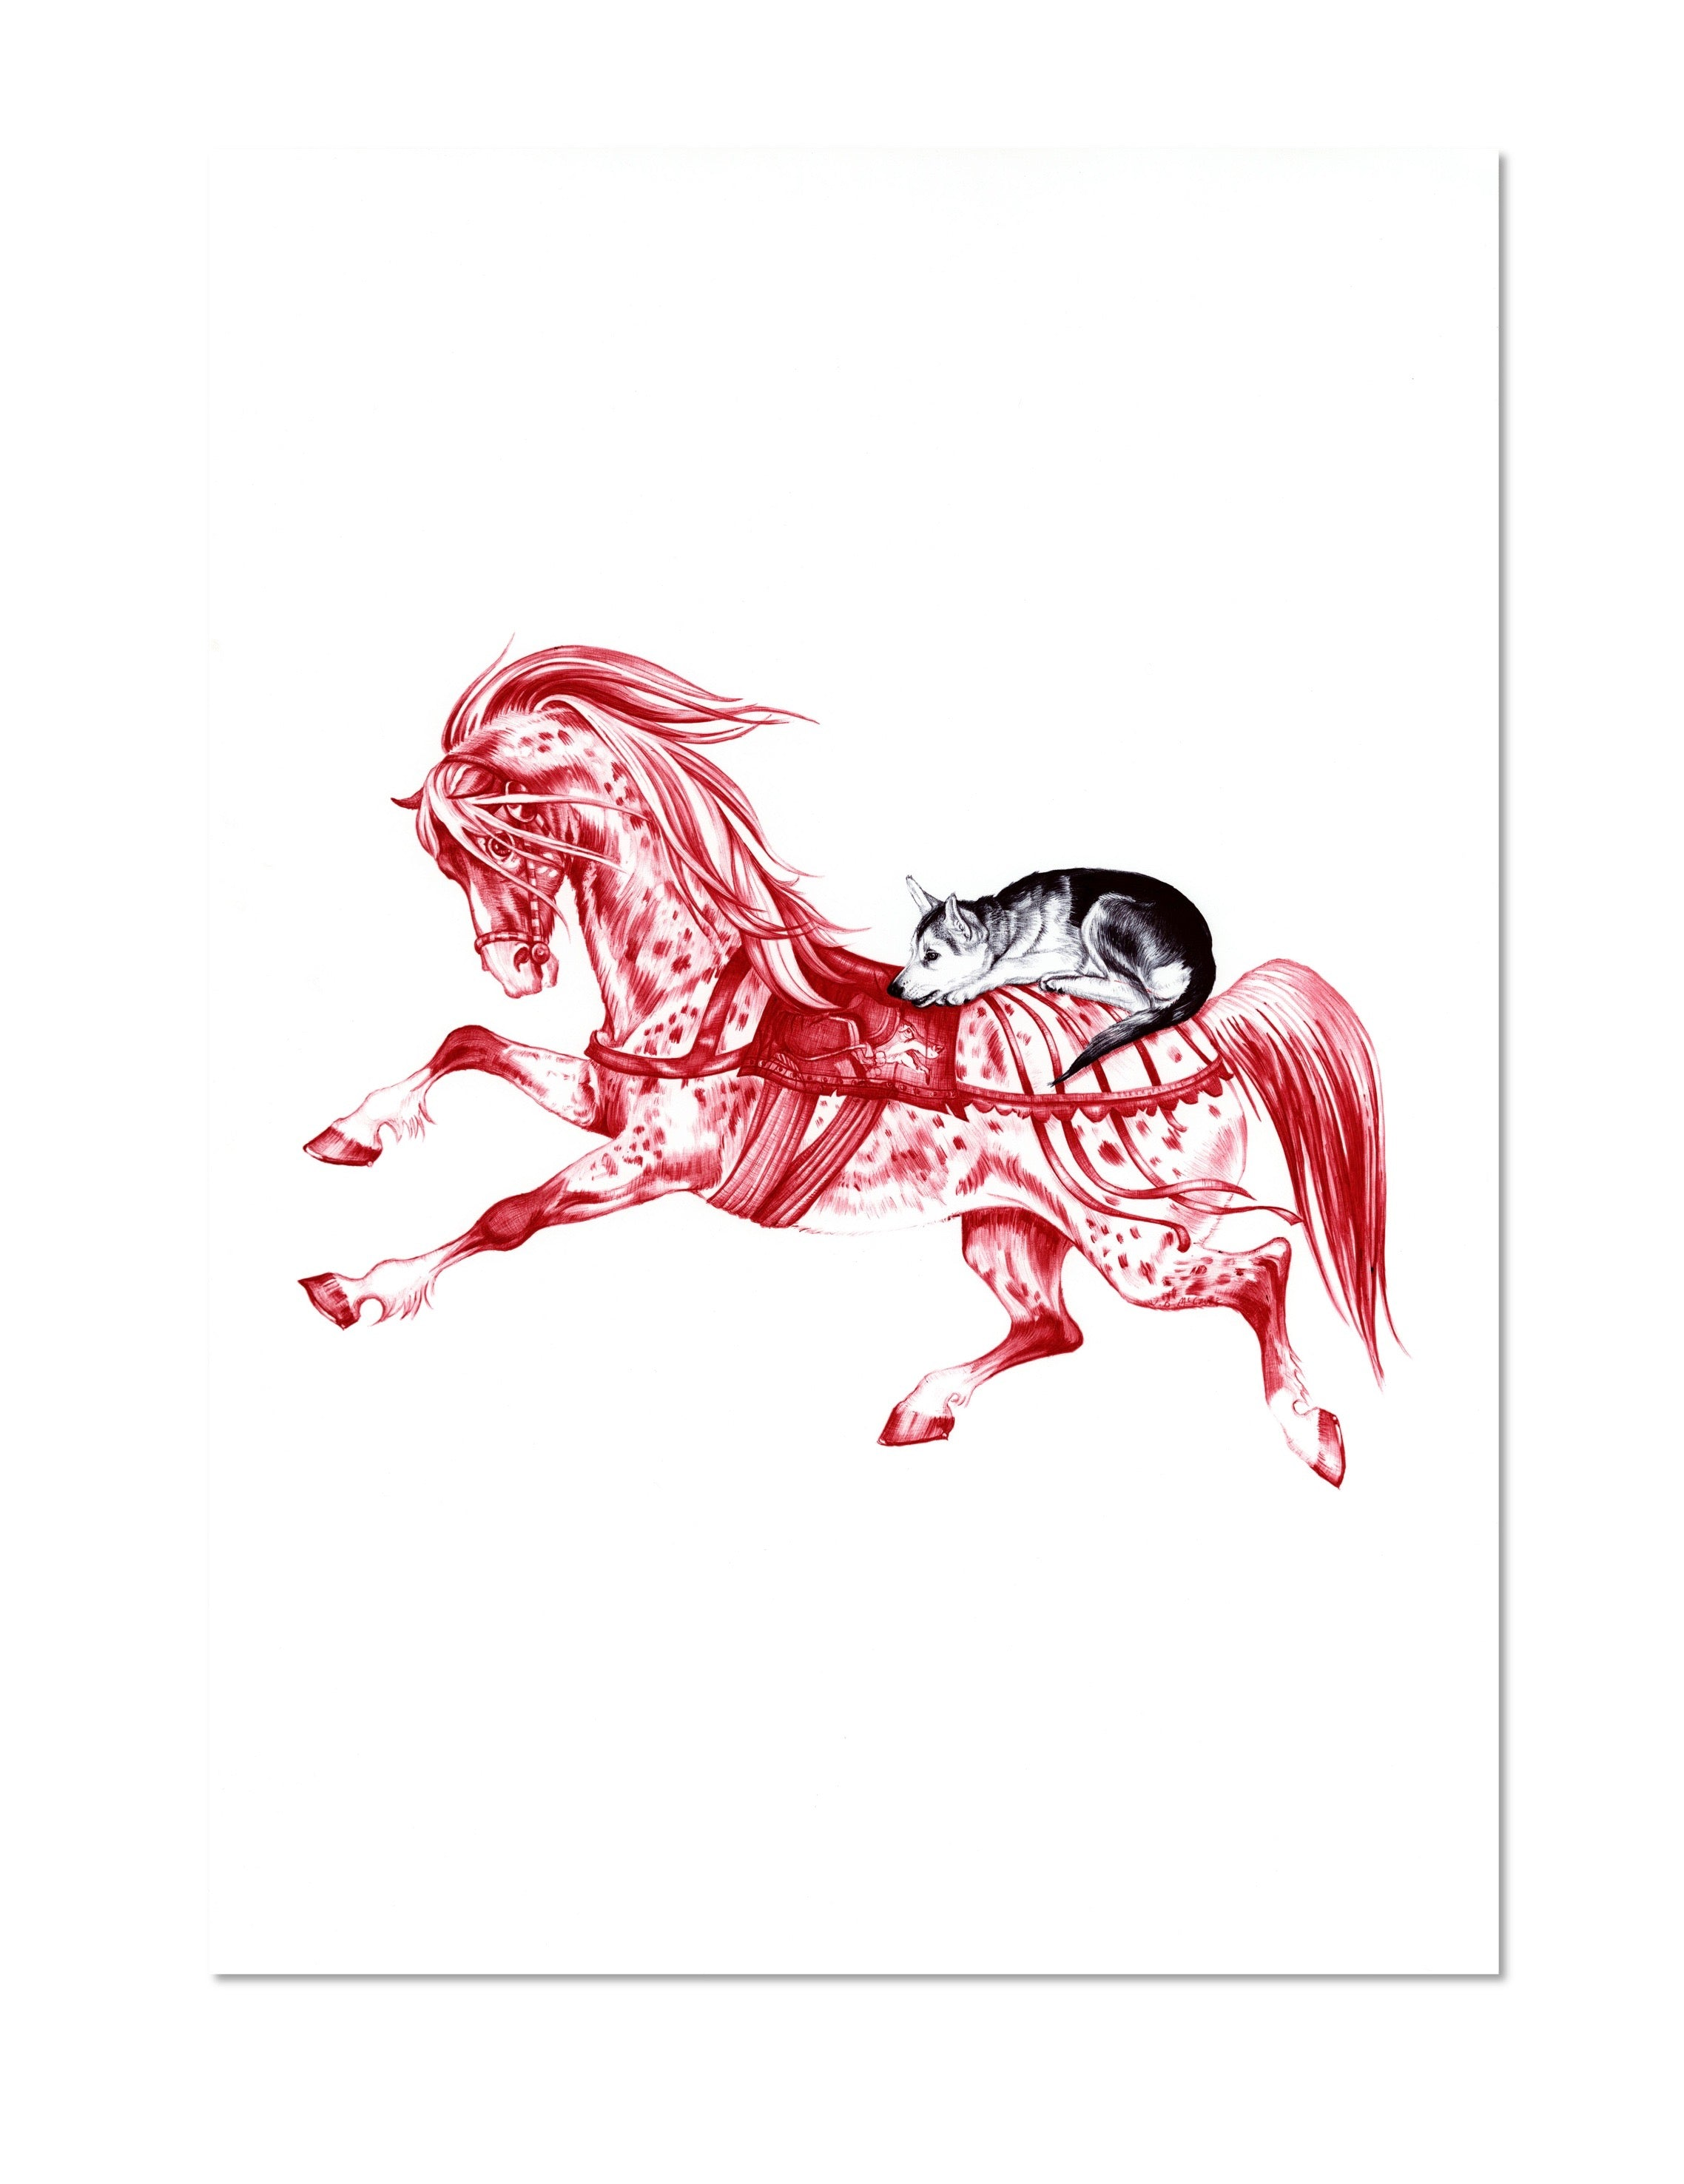 The Horse and the Wolf Cub Limited Edition Print